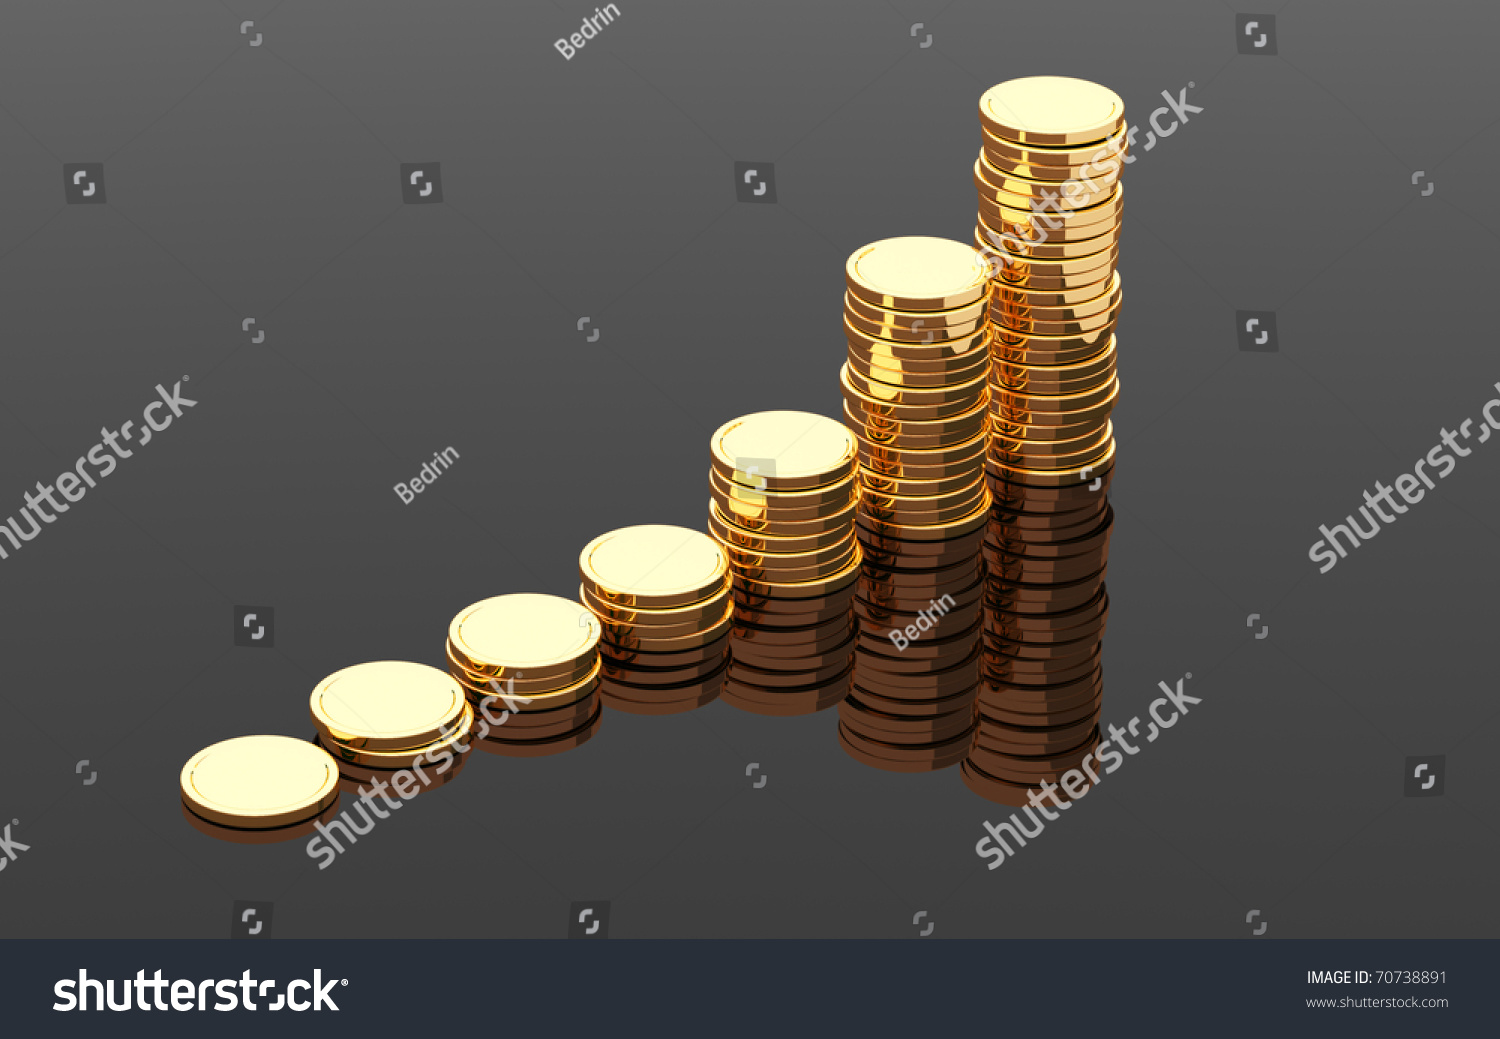 gold coins black background - photo #18